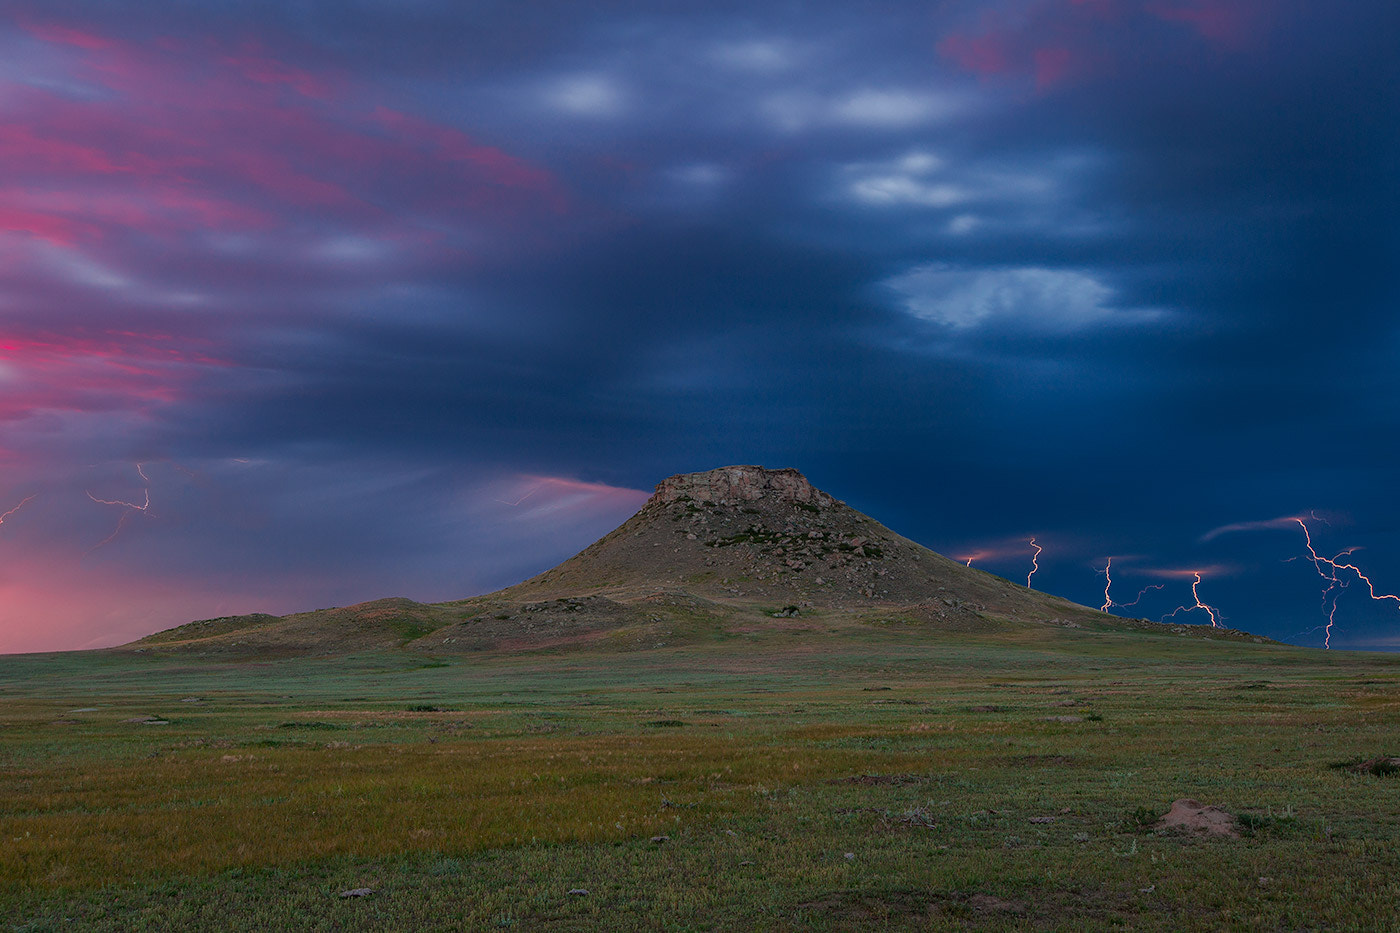 Photograph Thunder Butte by Richard Steinberger on 500px